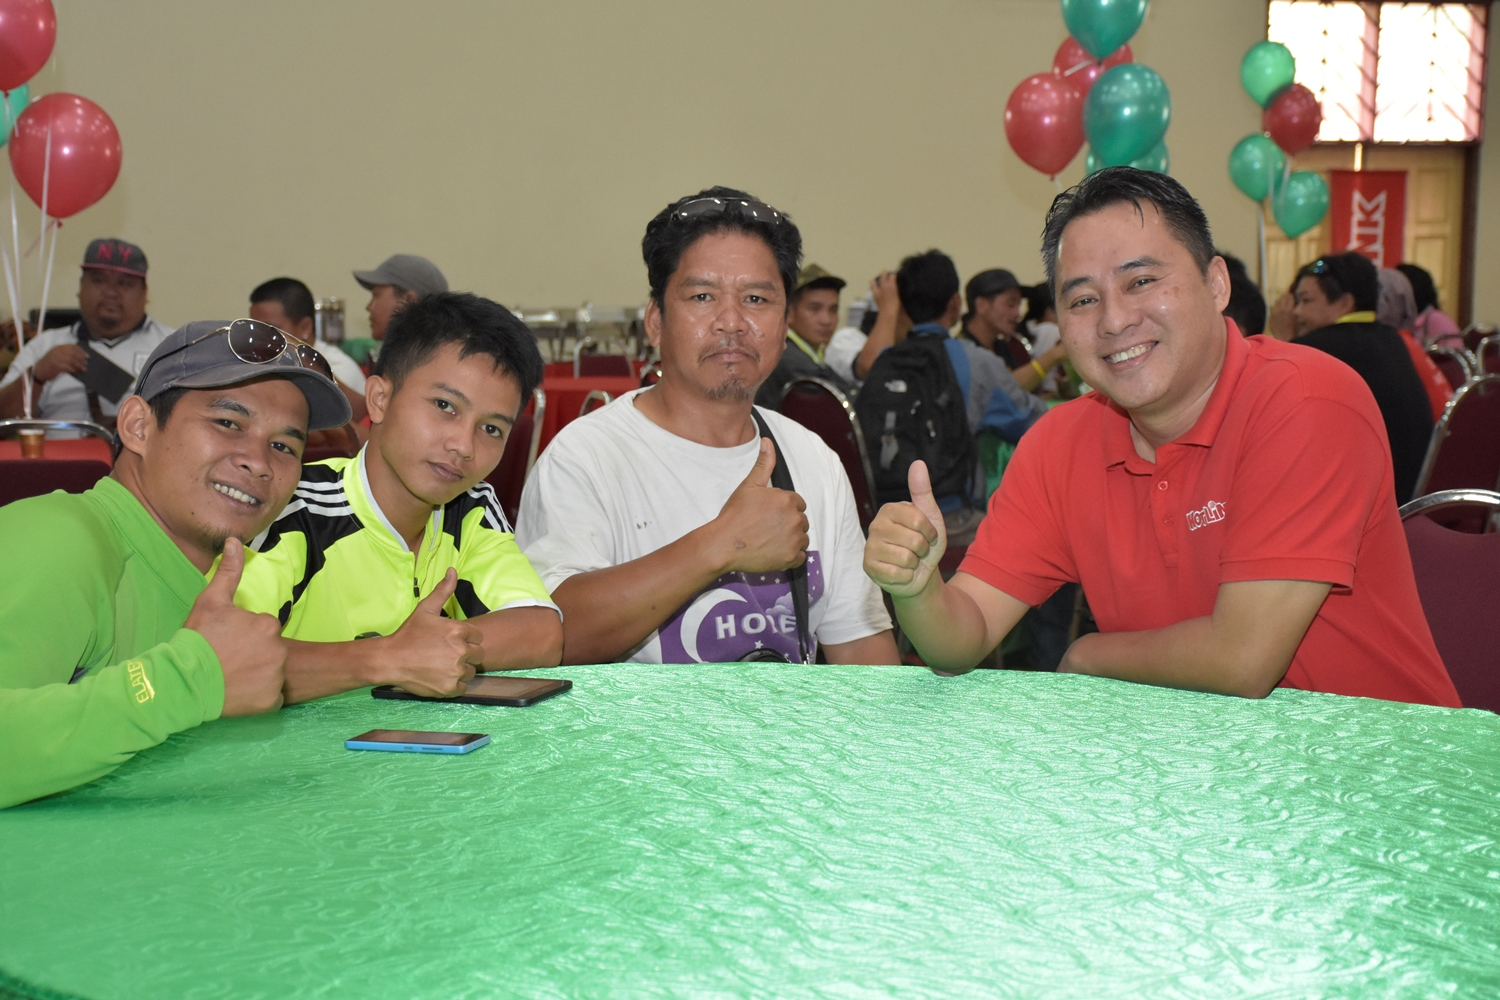 Spending time with Kinabalu mountain guides at Maxis' Christmas charity do. (From right - Melvin Jeffrine Mojinun, Maxis Head of Sabah Region and the mountain guides)